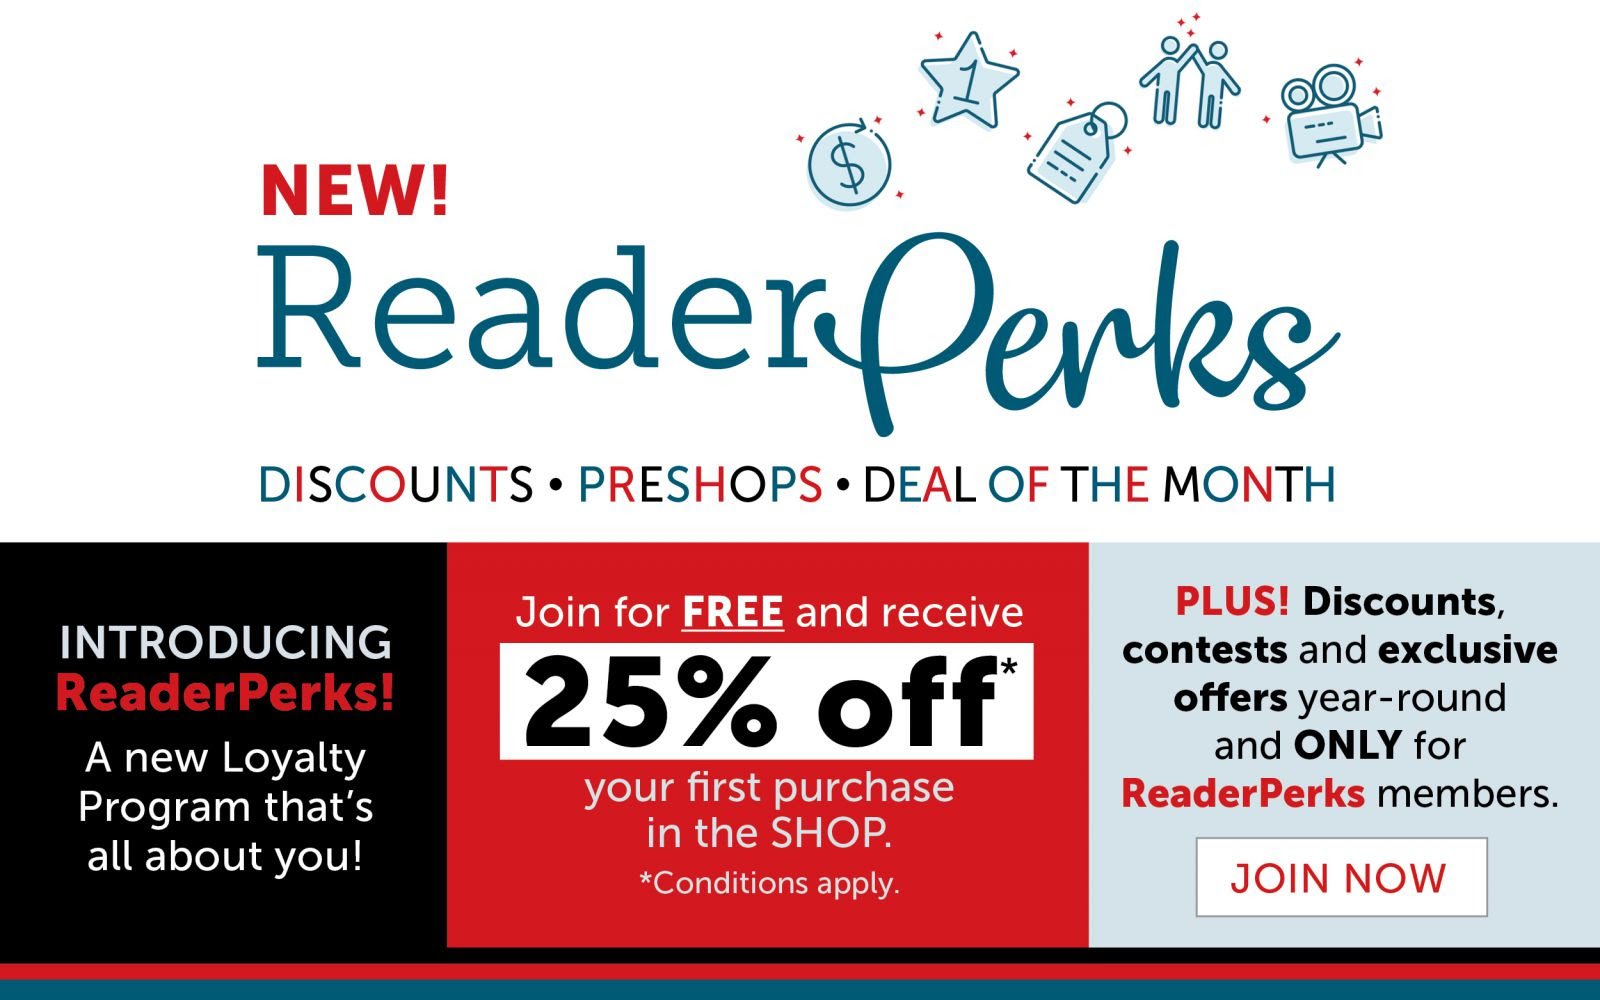 Join ReaderPerks!